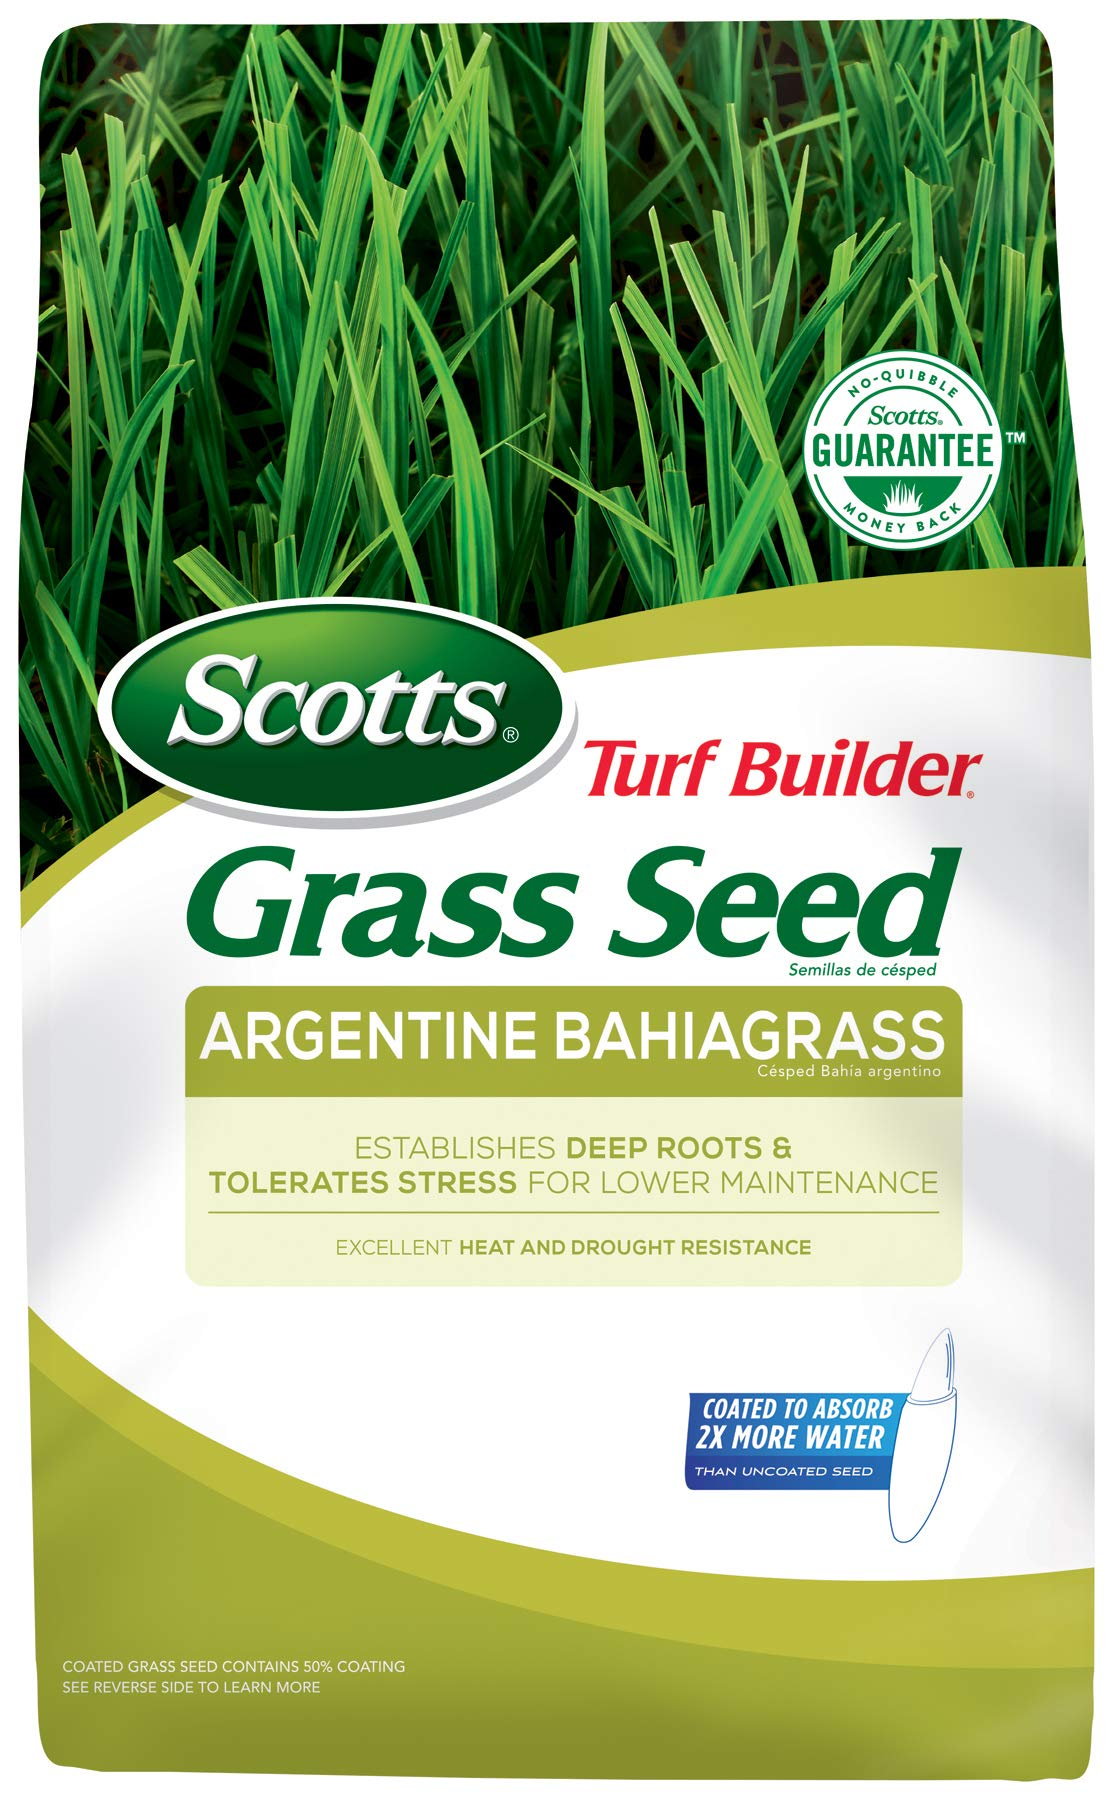 Scotts Turf Builder Grass Seed Argentine Bahiagrass, 10 lb. - Designed for Full Sun and Heat and Drought Resistance - Seeds up to 2,000 sq. ft. by Scotts